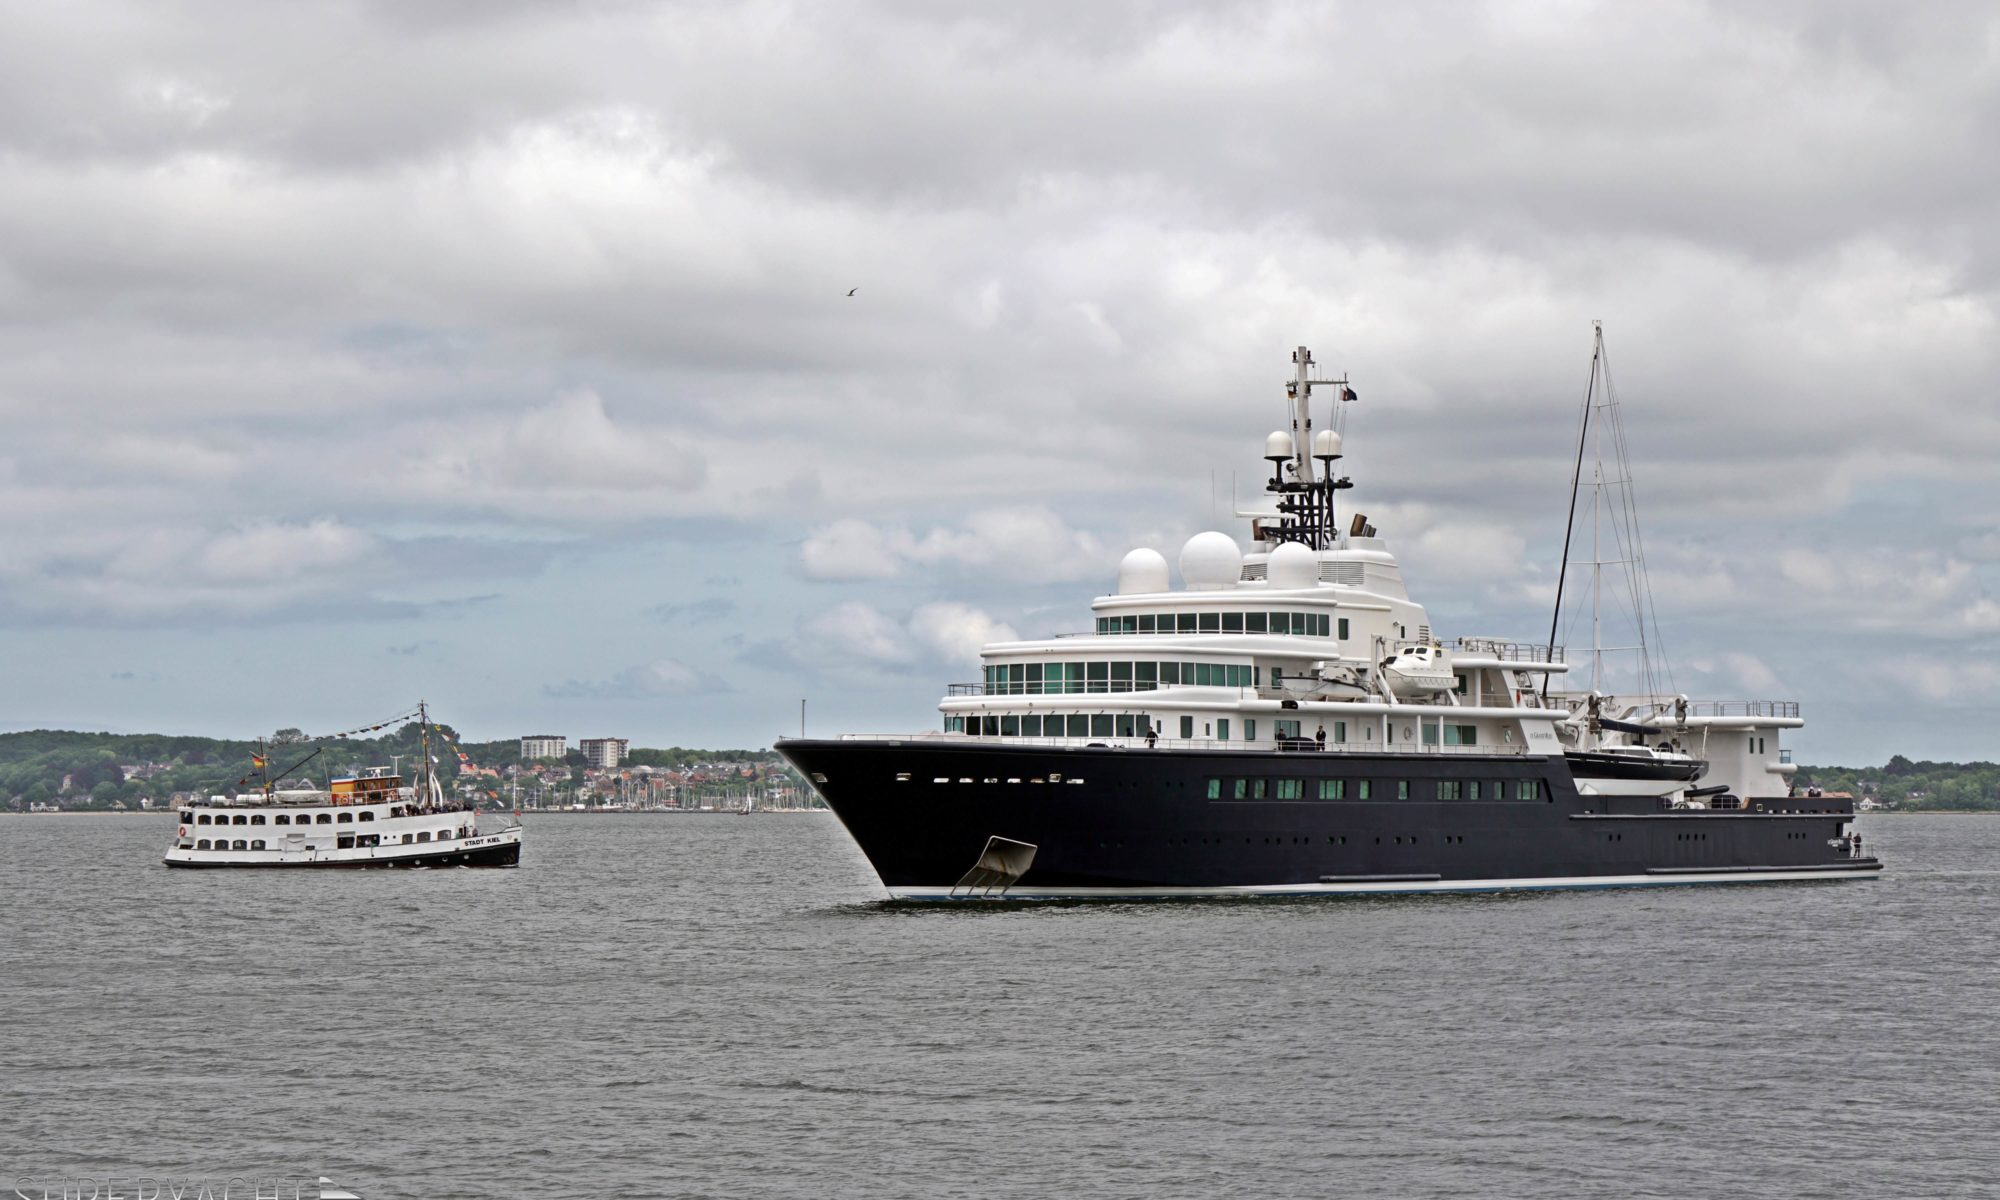 Le Grand Bleu was built in 2000 at Bremer Vulkan shipyard in Germany. This 113m megayacht is equipped with many tenders and toys!